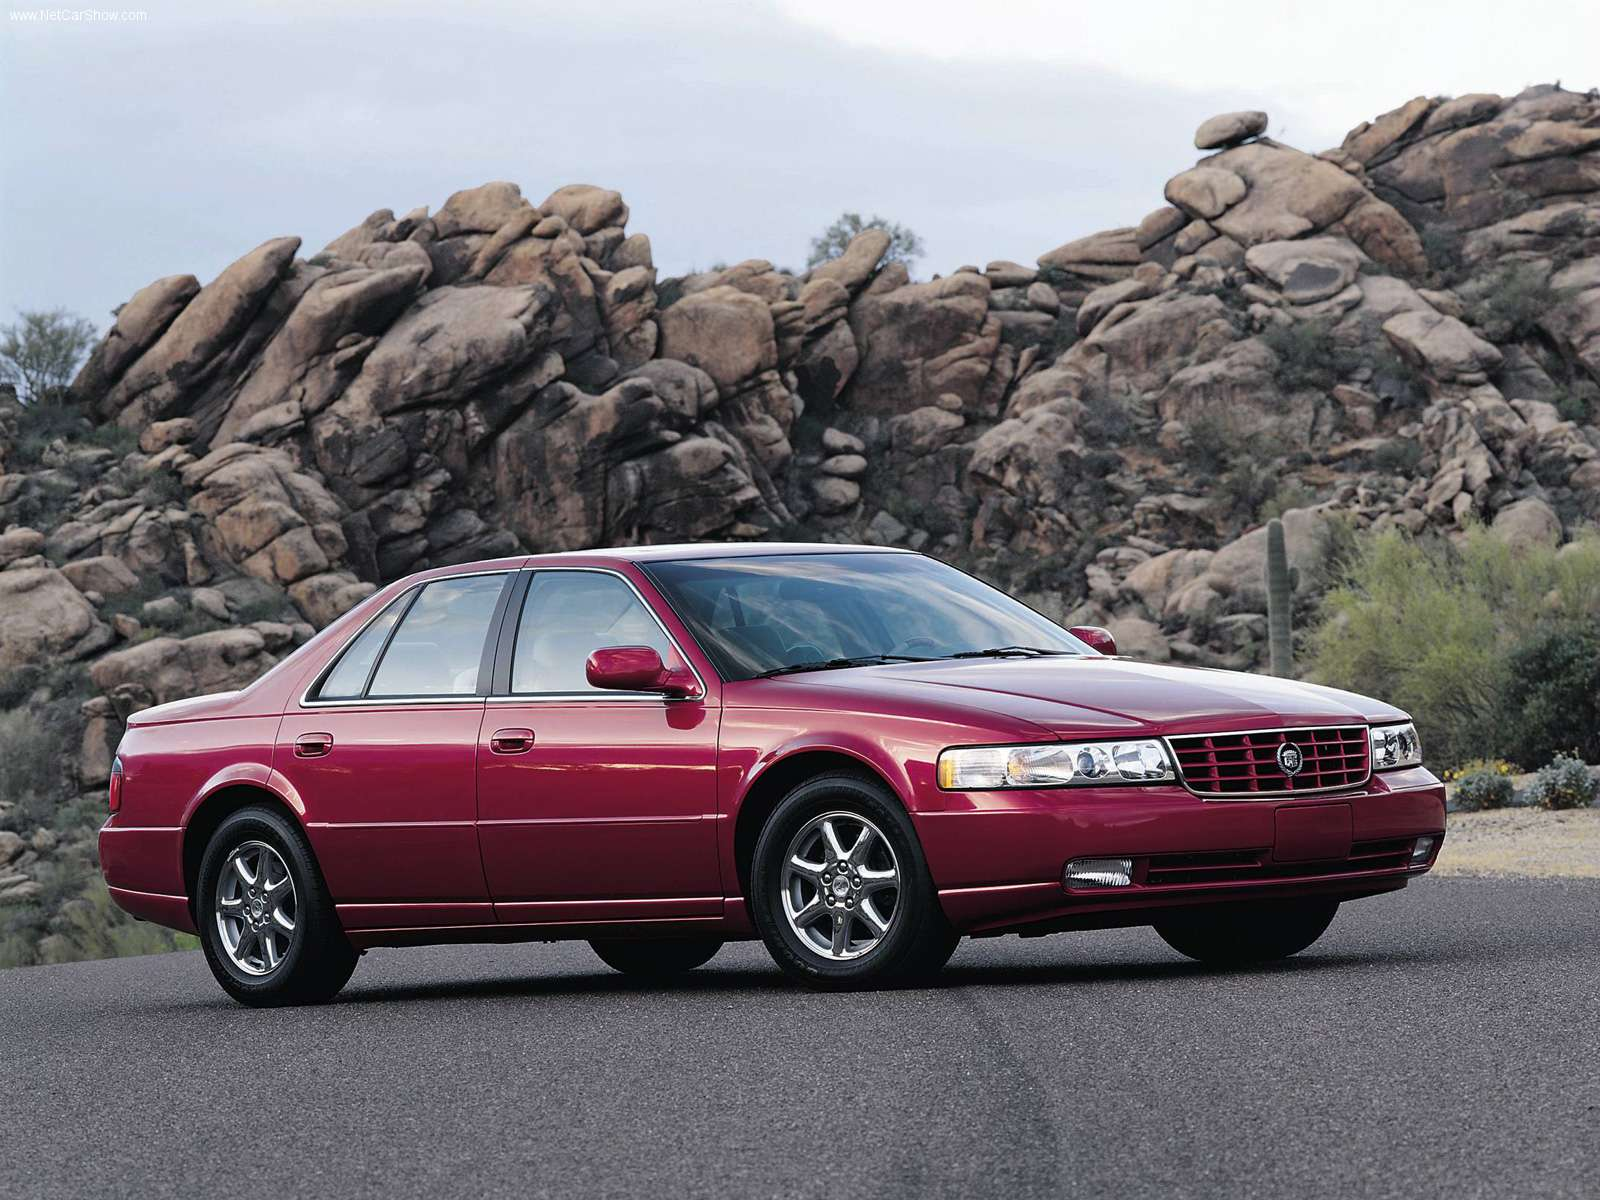 Cadillac Seville red #1